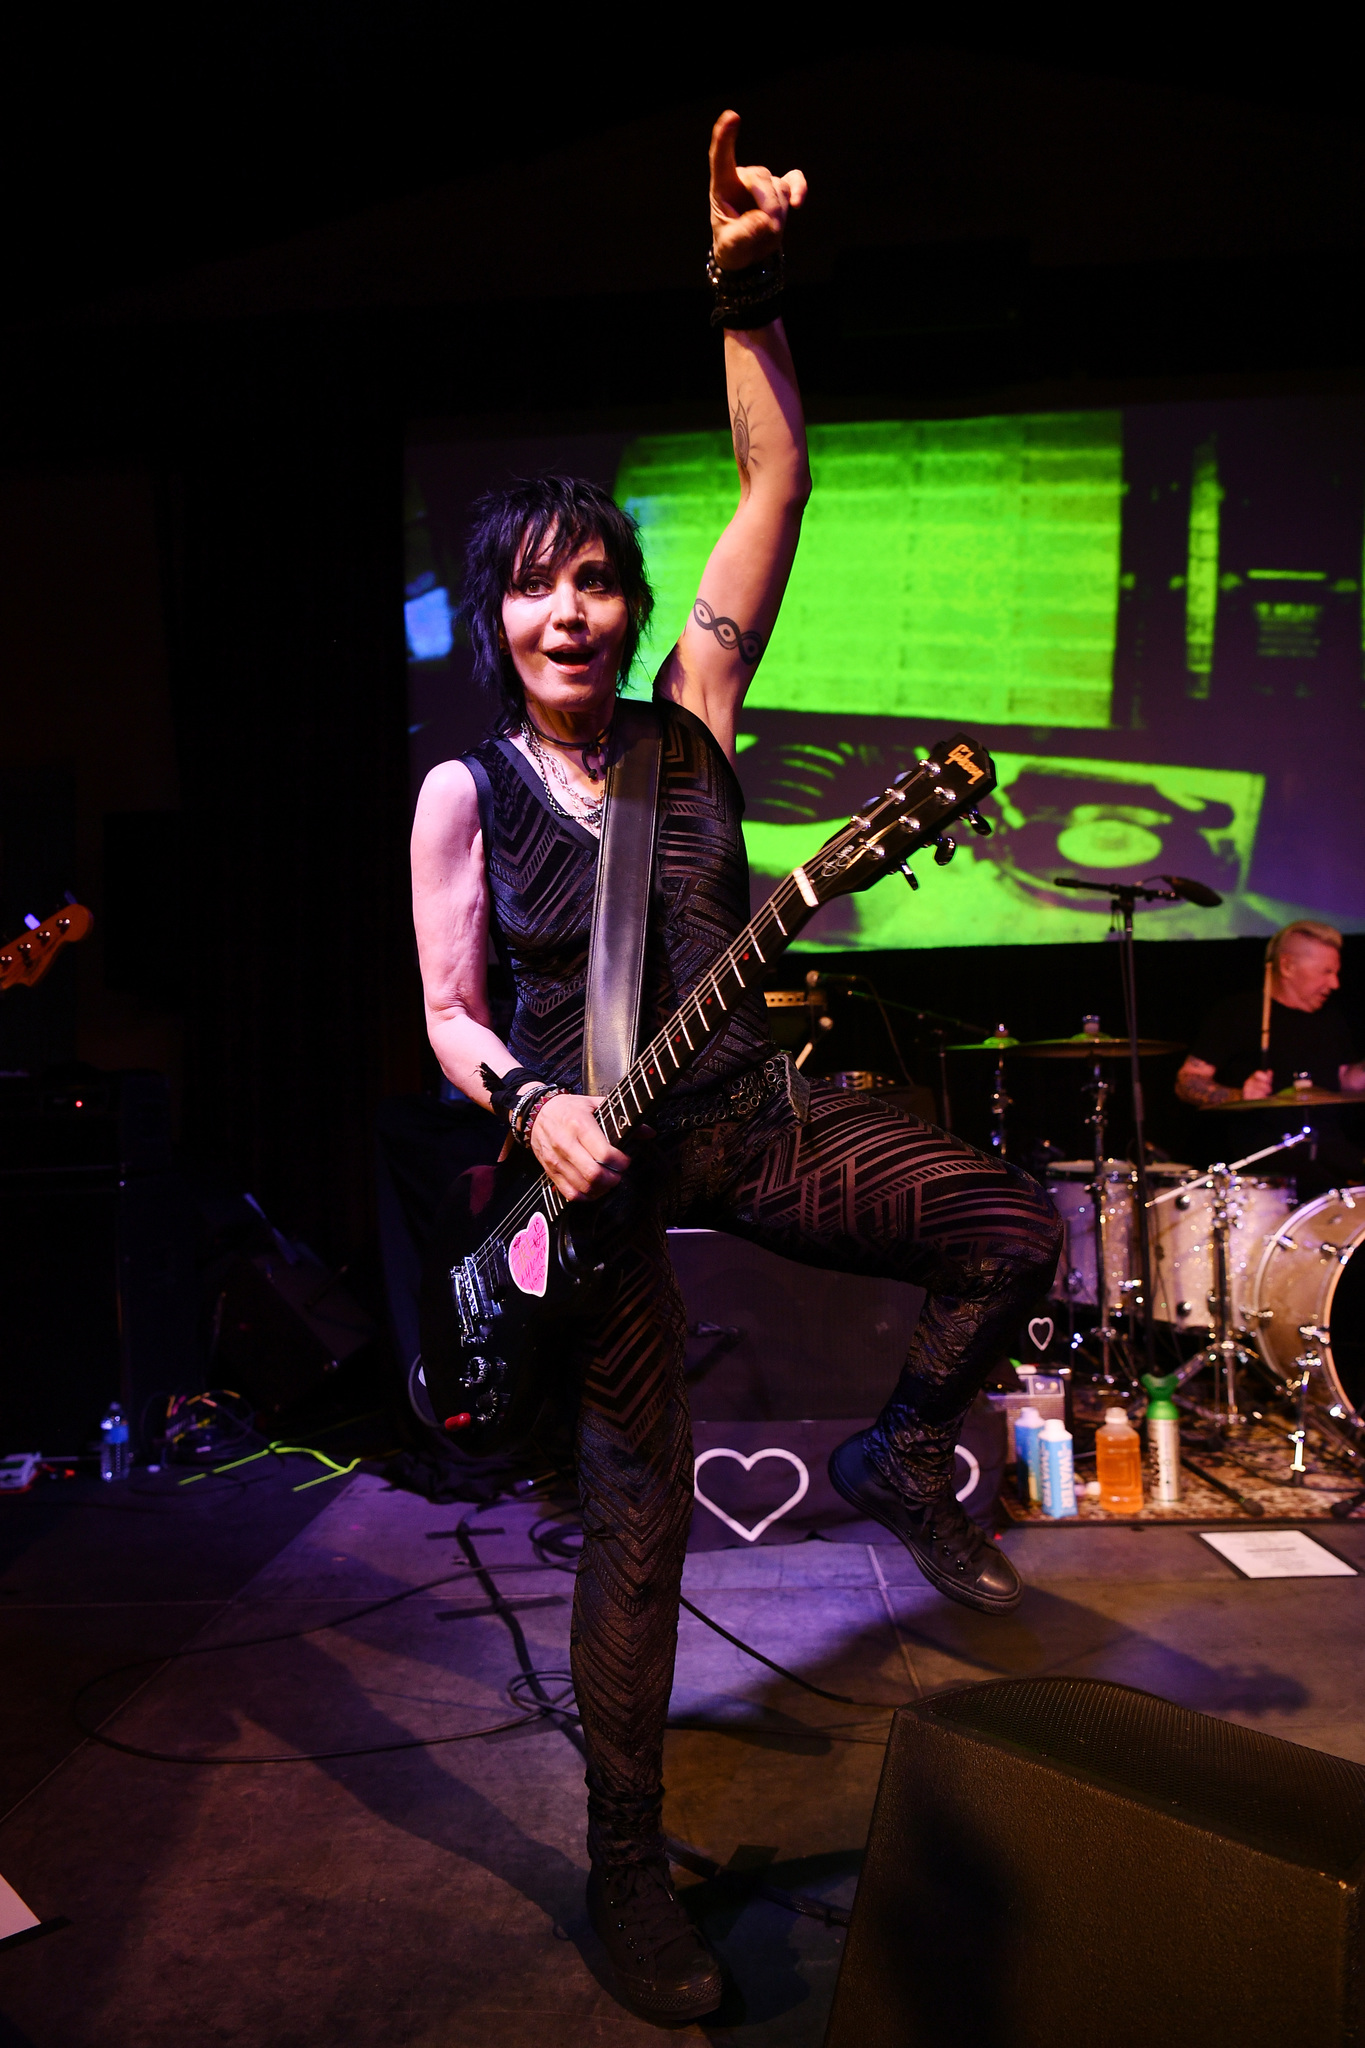 Joan Jett at an event for Bad Reputation (2018)